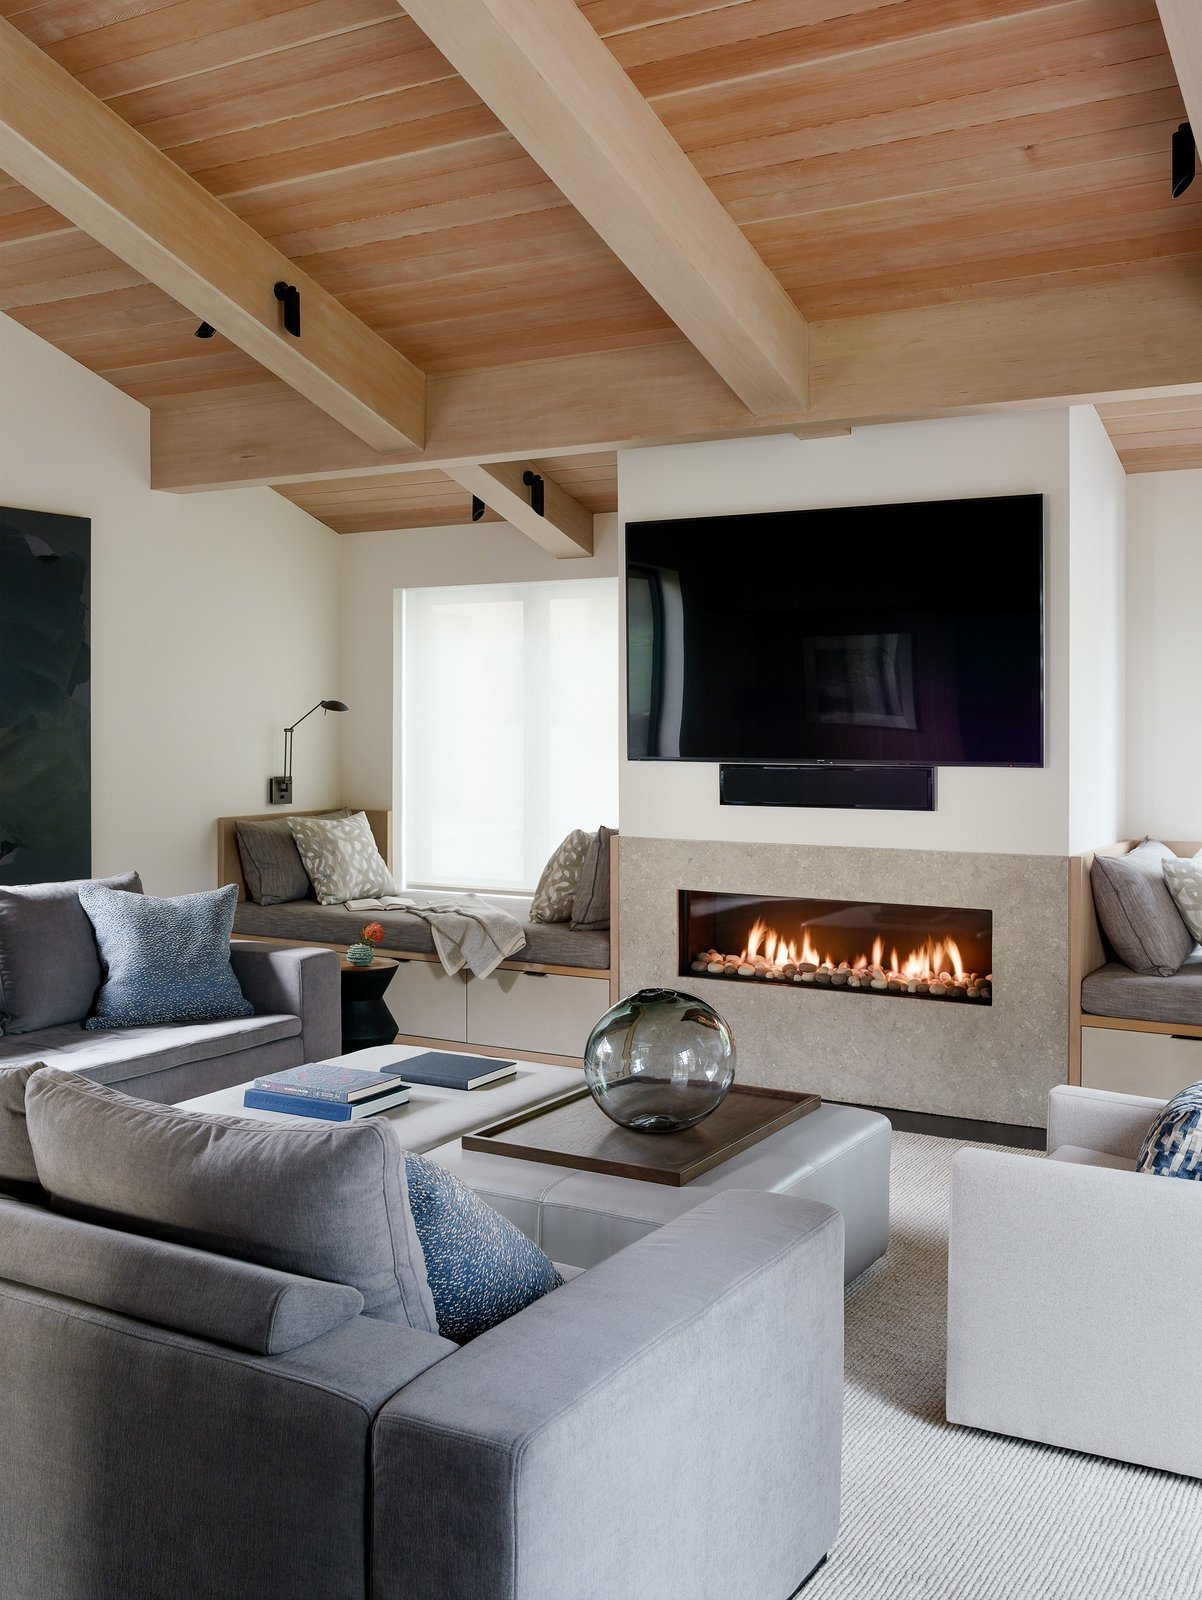 Living Room, Chair, Bench, Rug Floor, Sofa, Gas Burning Fireplace, and Standard Layout Fireplace  Photo 6 of 15 in This Renovated Sea Ranch Retreat Is an Absolute Must-See